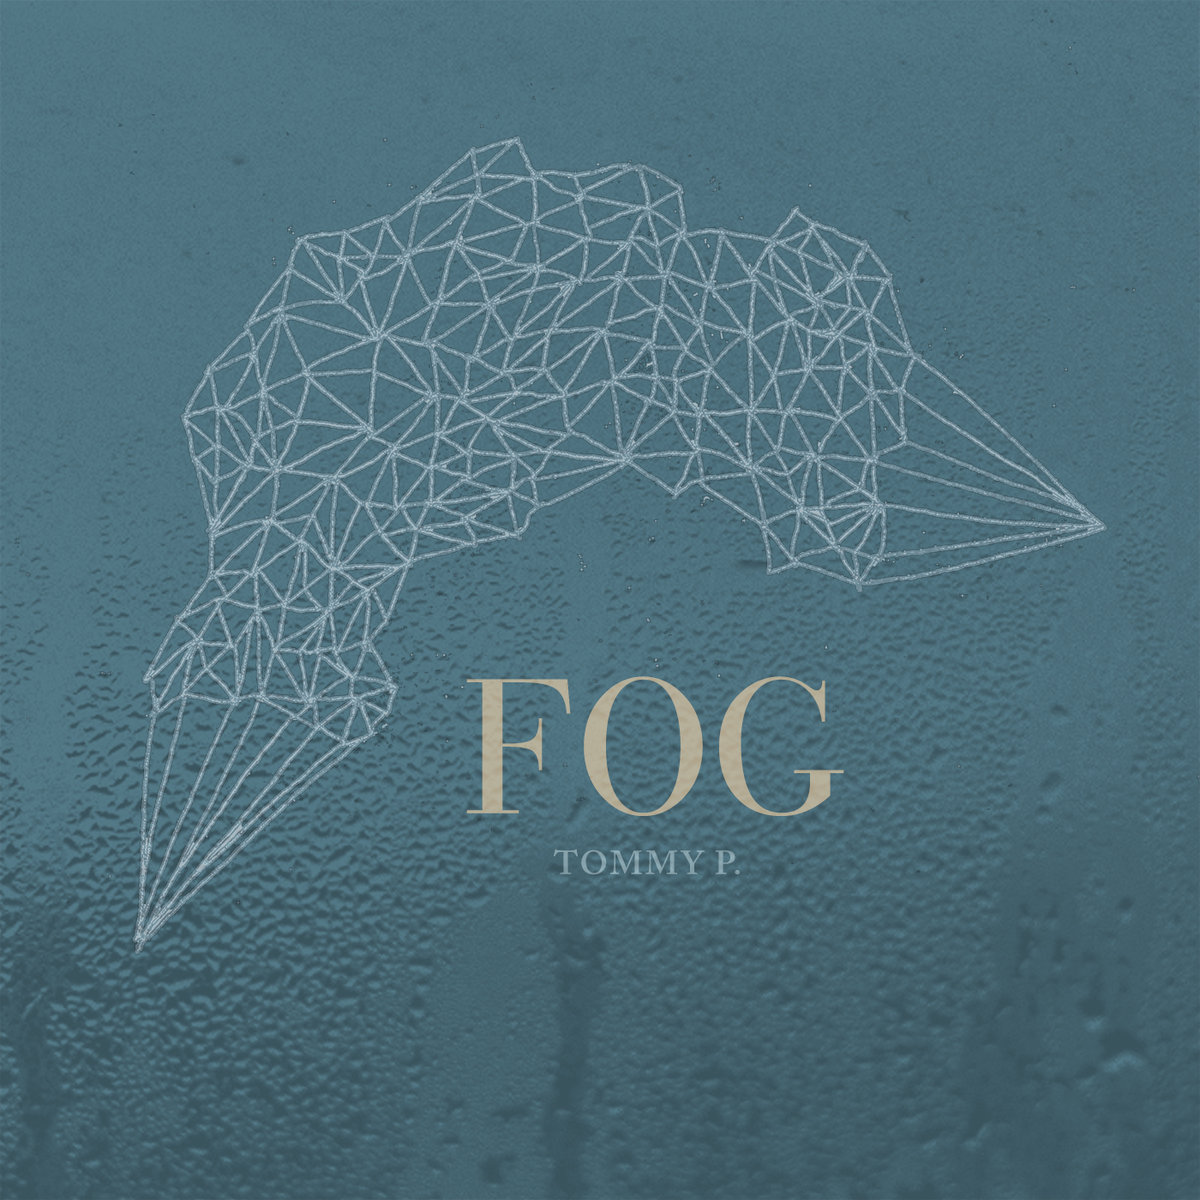 Tommy P. - Gravity @ 'Fog' album (11th ave records, 11thaverecords 11th avenue)